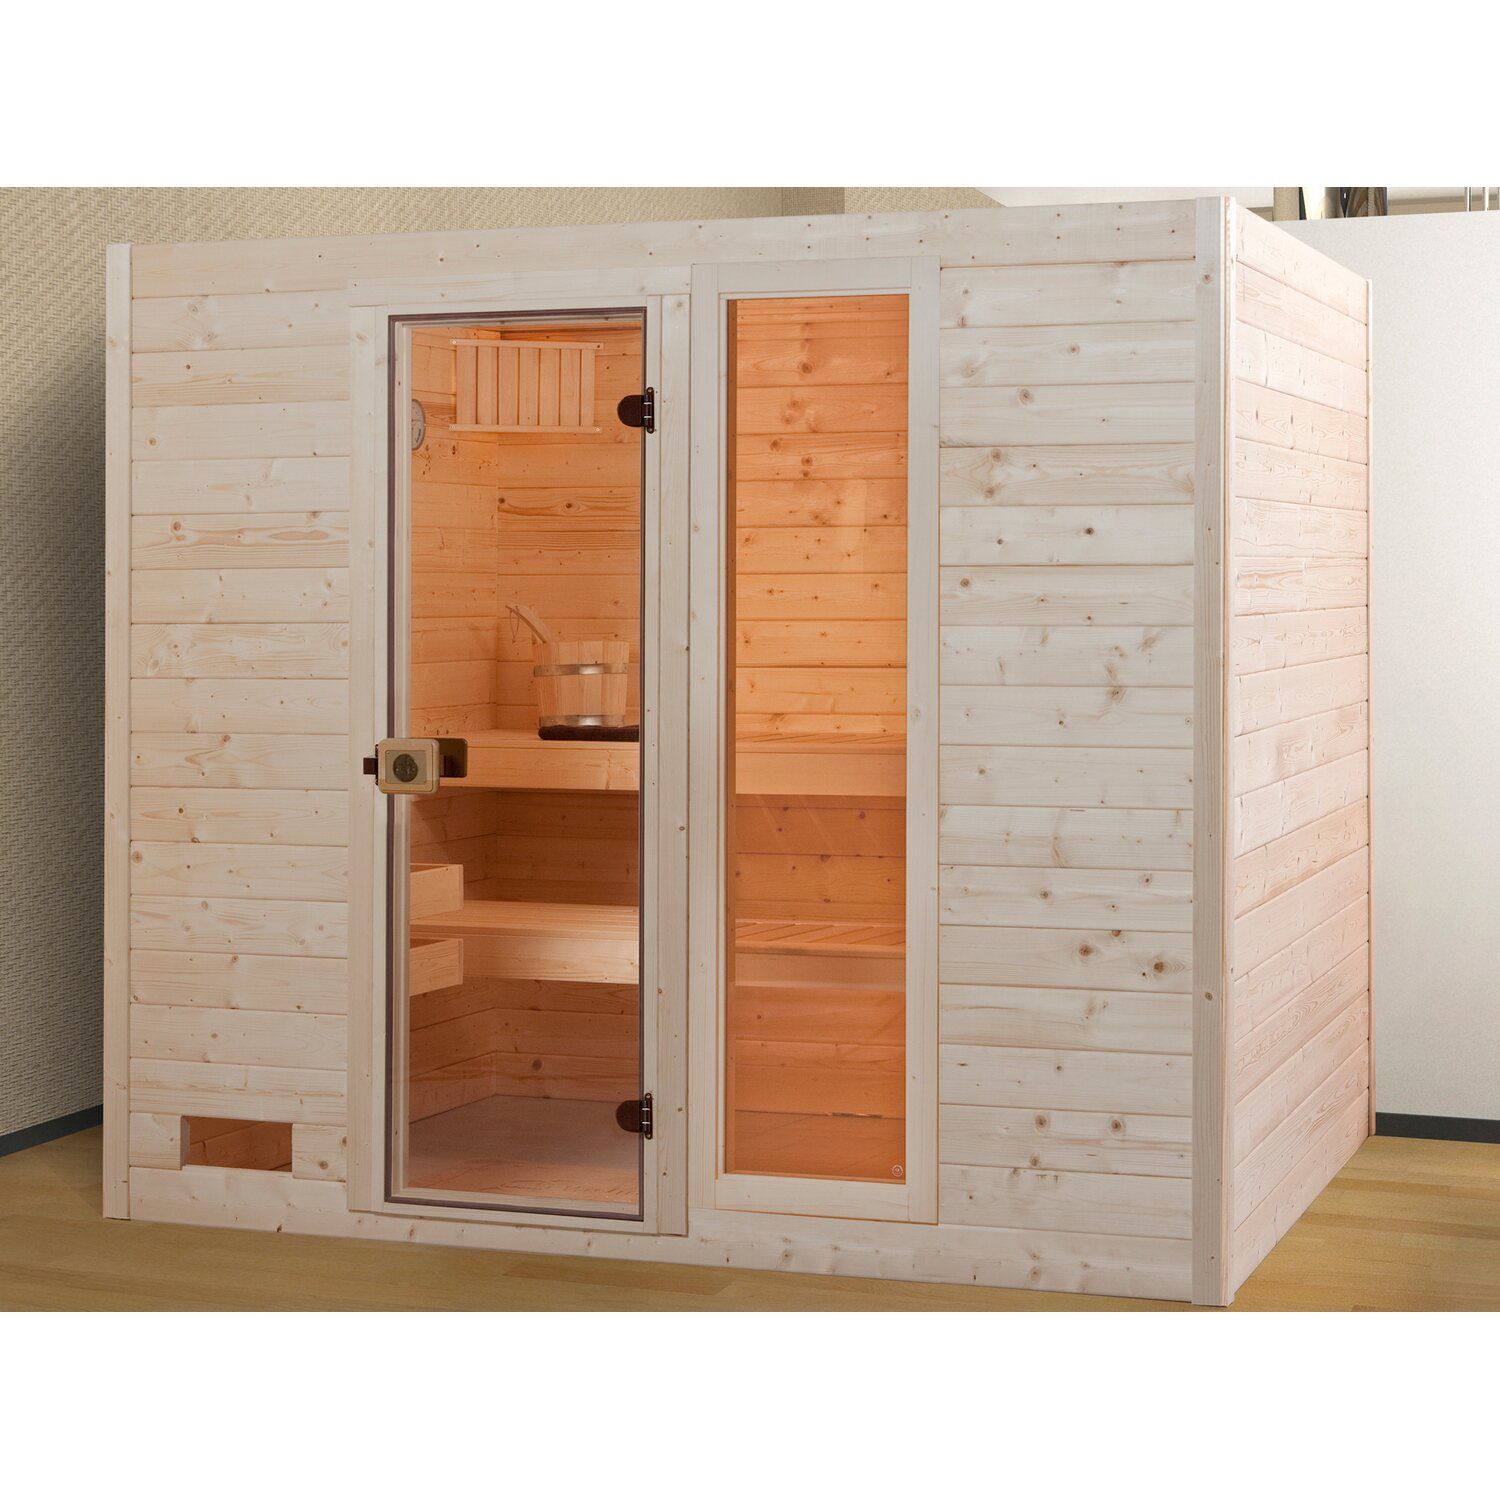 weka massivholz sauna 538 gr 4 mit glast r und fensterelement ohne ofen kaufen bei obi. Black Bedroom Furniture Sets. Home Design Ideas